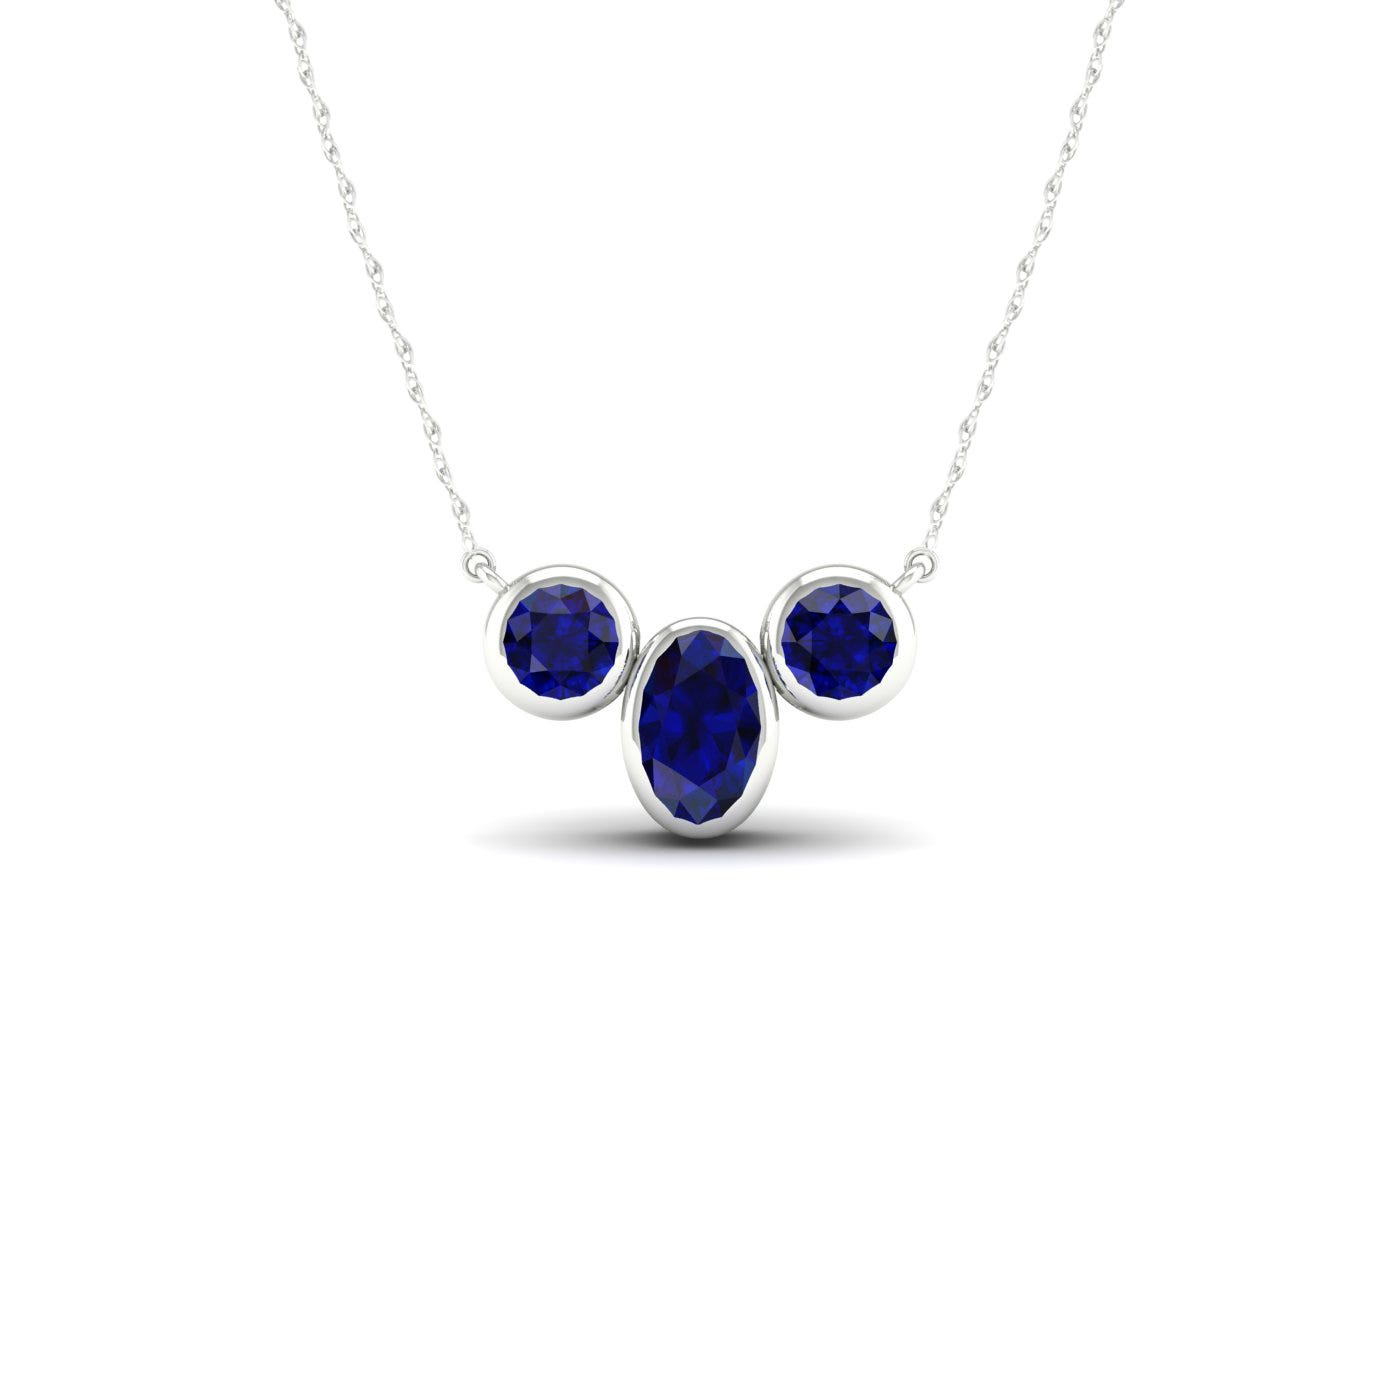 Oval & Round Bezel Blue Sapphire Necklace in 10k White Gold